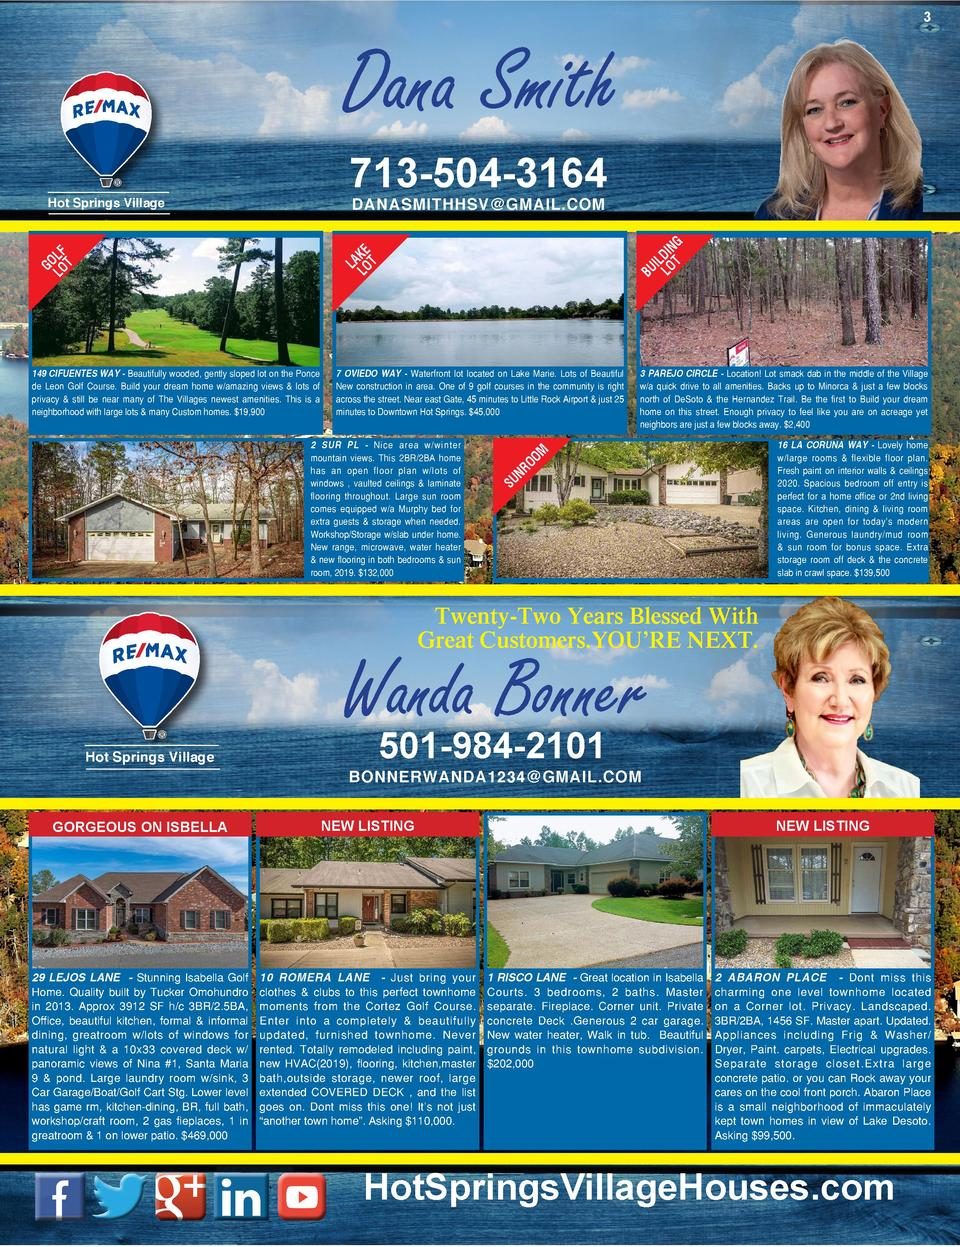 3  Dana Smith 713-504-3164 DANASMITHHSV GMAIL.COM  Hot Springs Village  G IN LD OT I BU L  KE LA LOT  LF GO LOT  149 CIFUE...